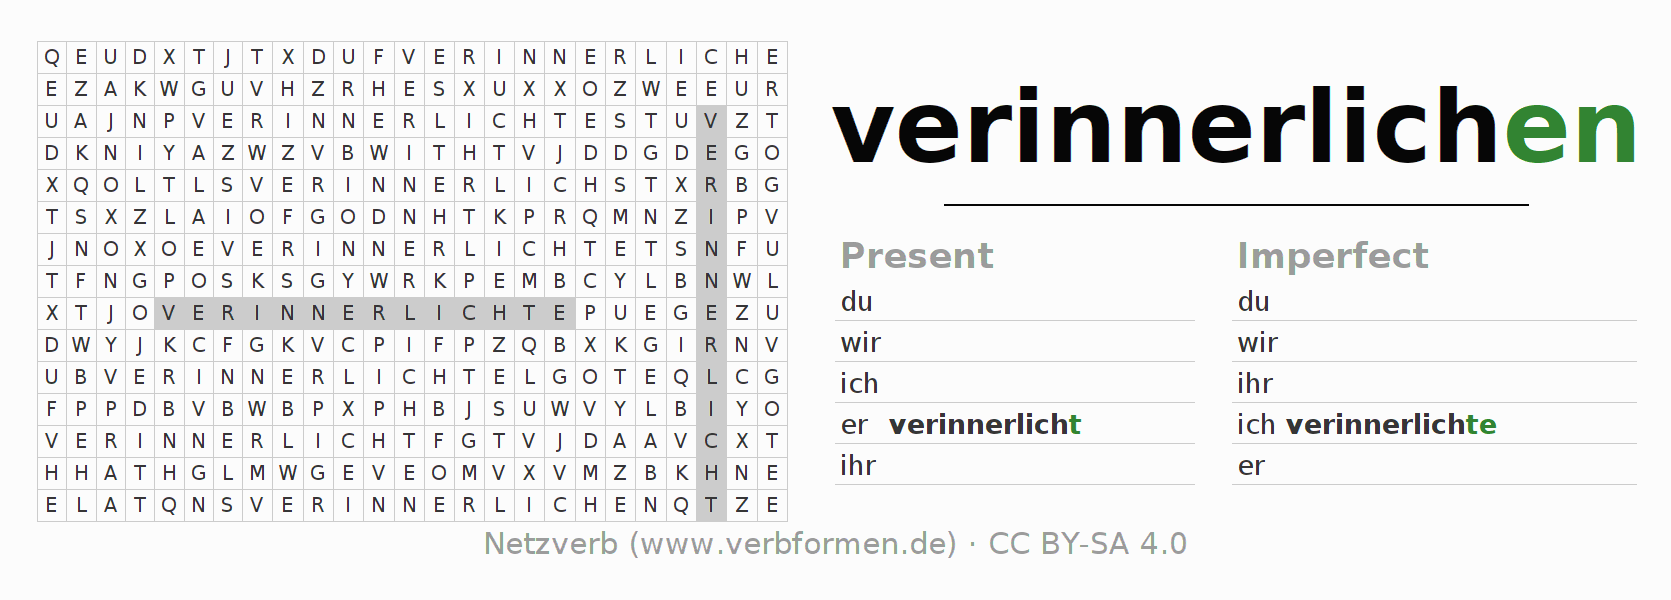 Word search puzzle for the conjugation of the verb verinnerlichen